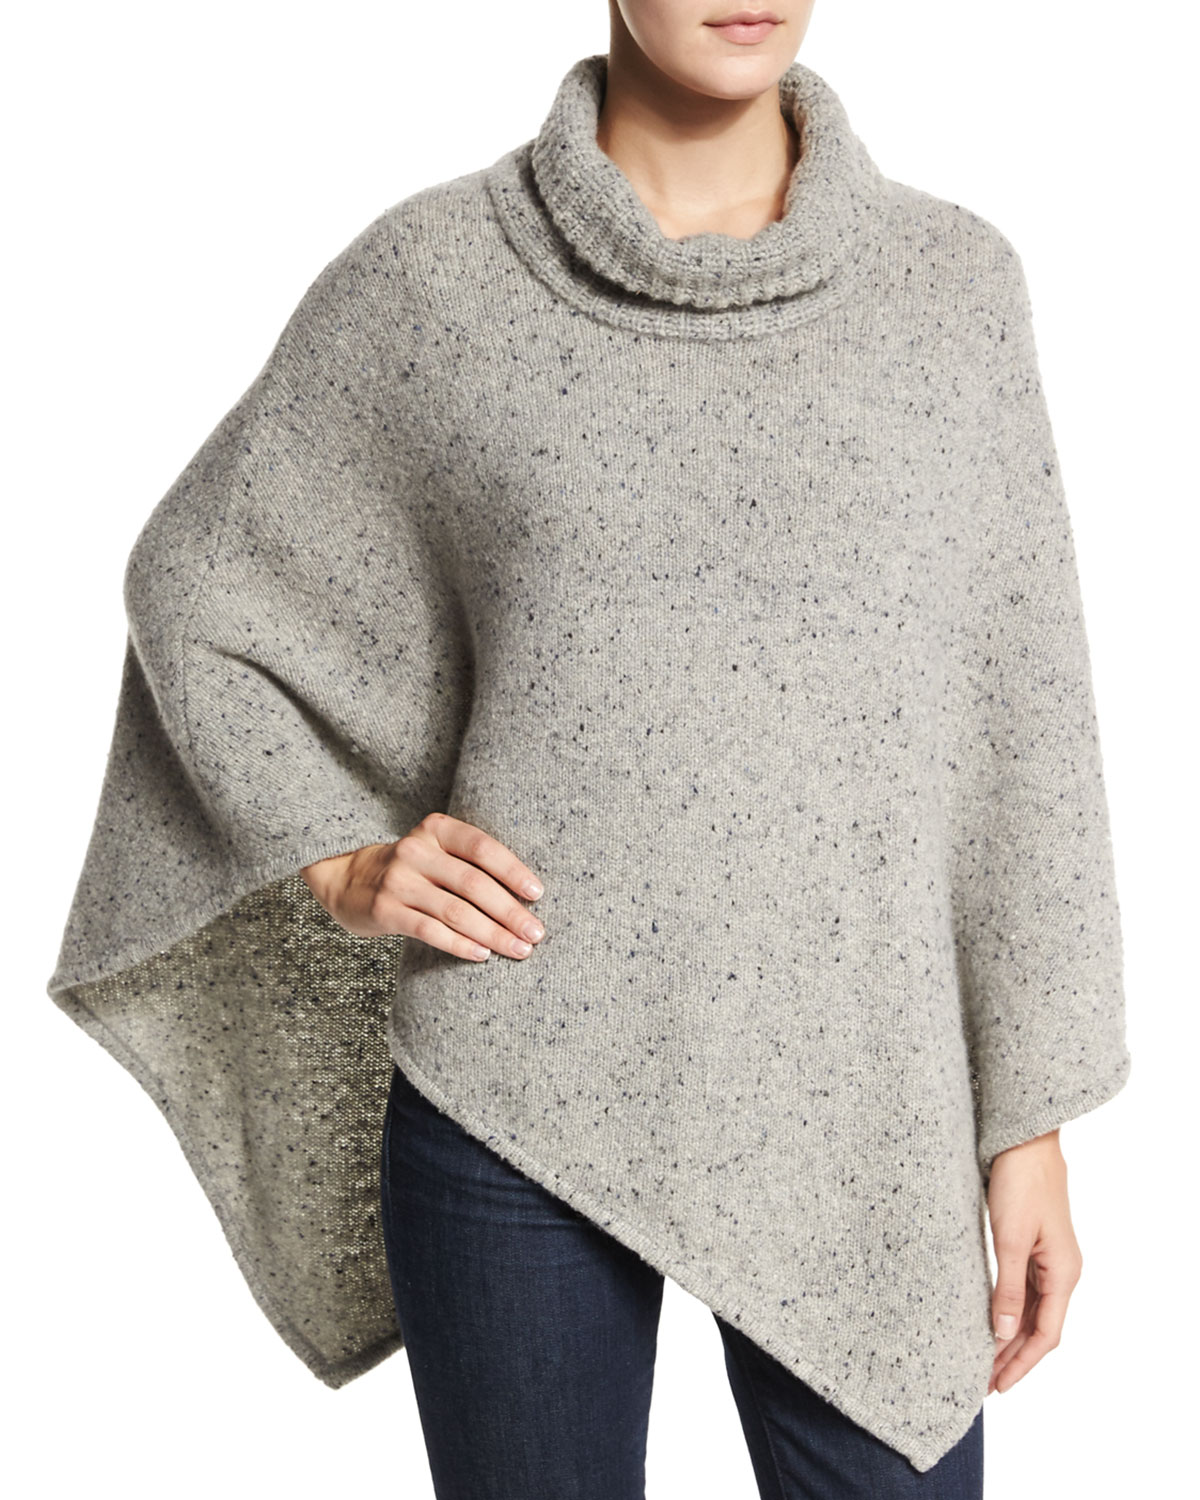 Haesel Speckled Cashmere Poncho, Size: MEDIUM/LARGE, LT HEATHER GRAY - Joie